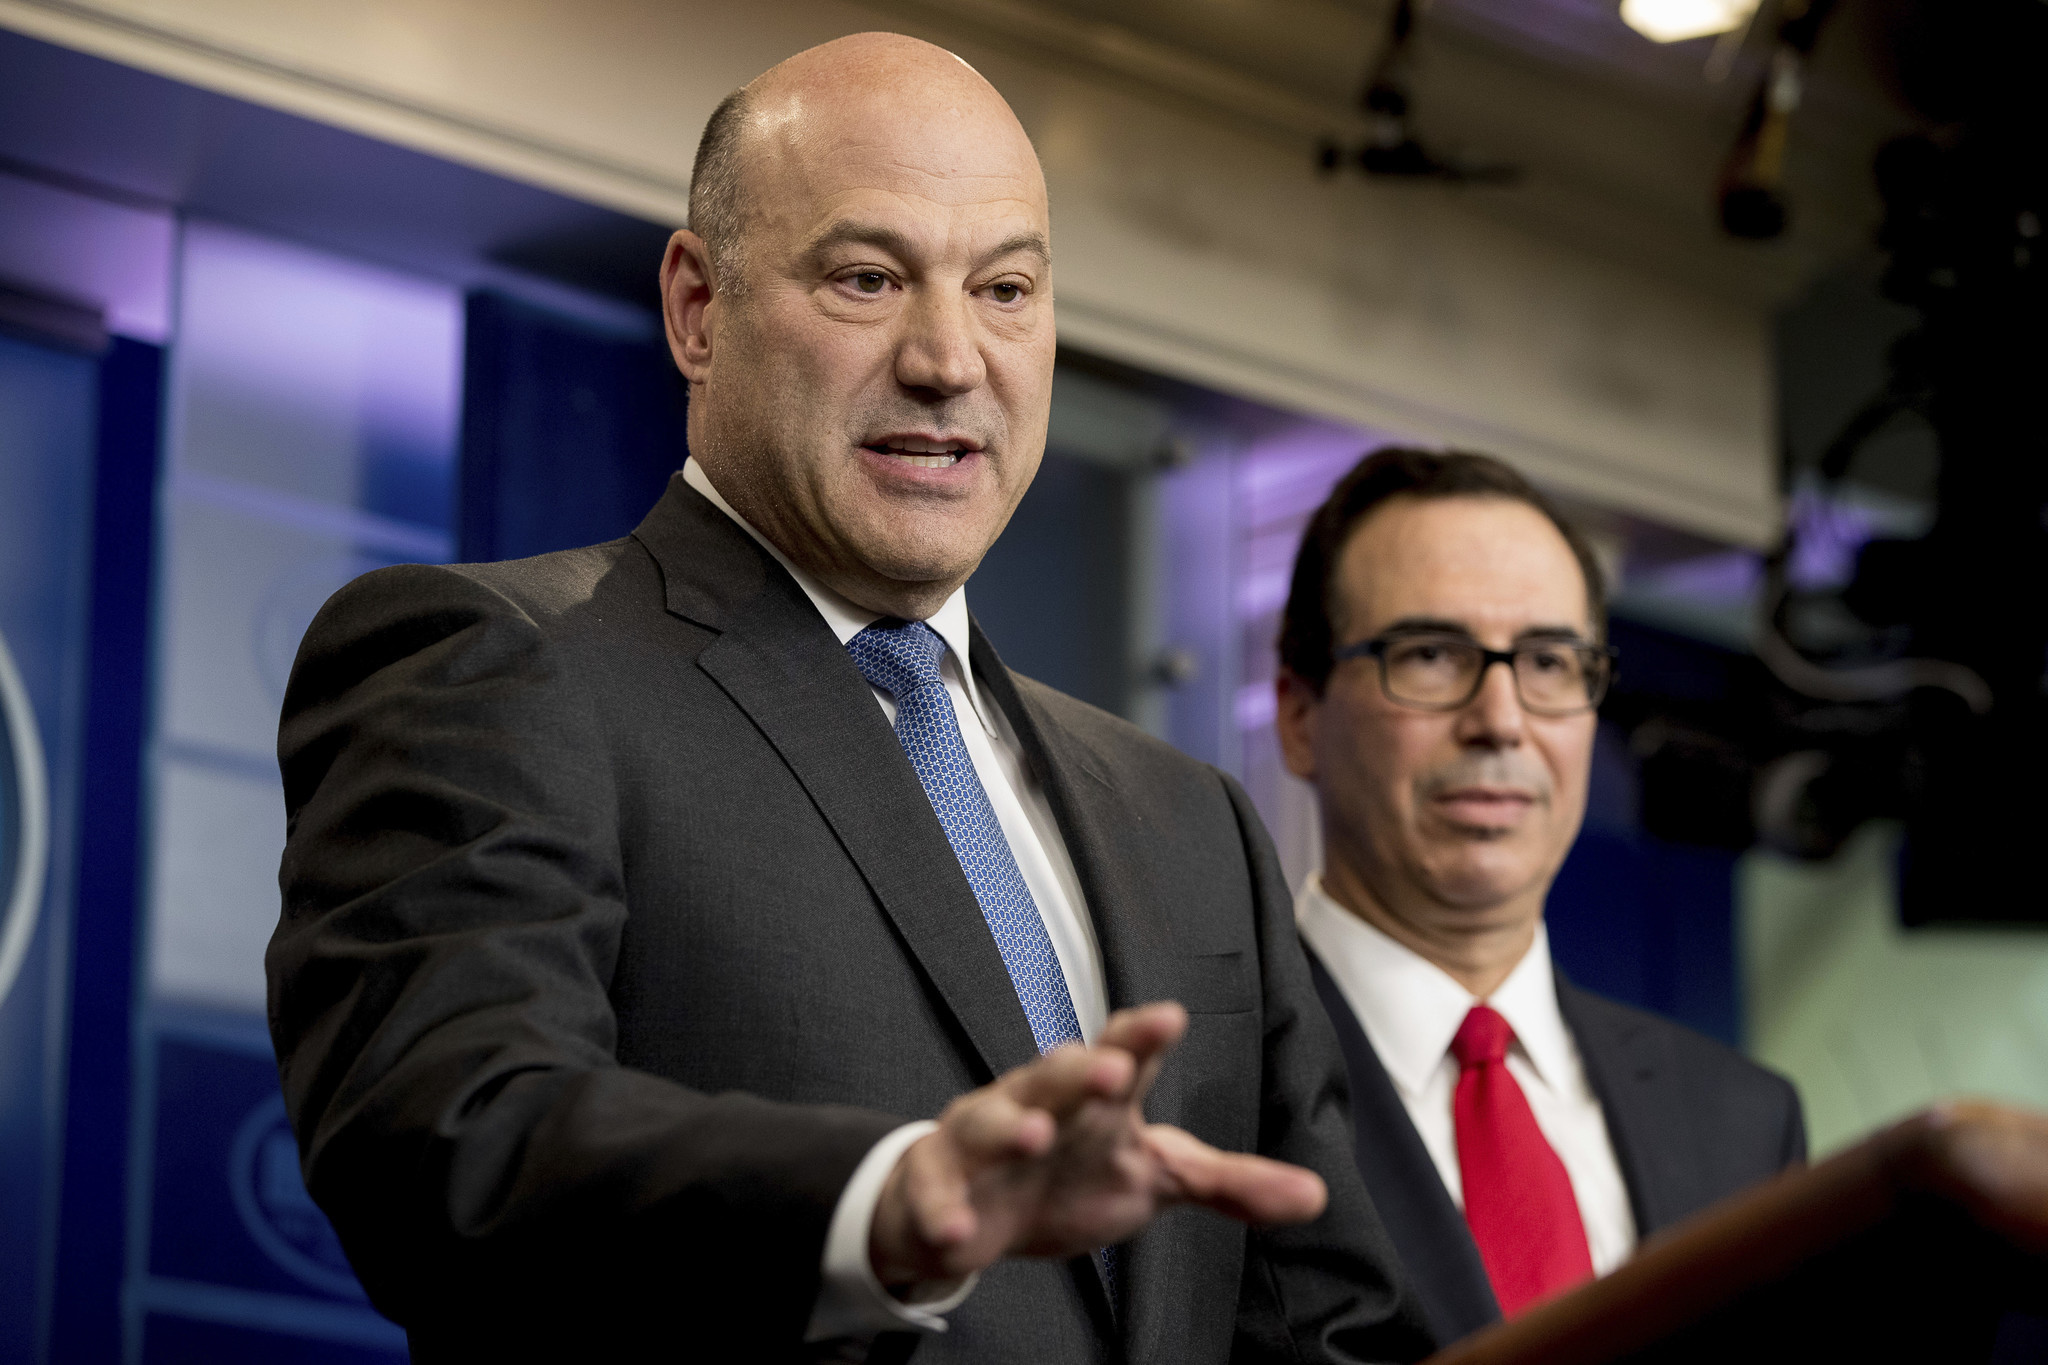 abcnews.go.com The Trump plan  Every bad tax idea, in one place fe54f85031e